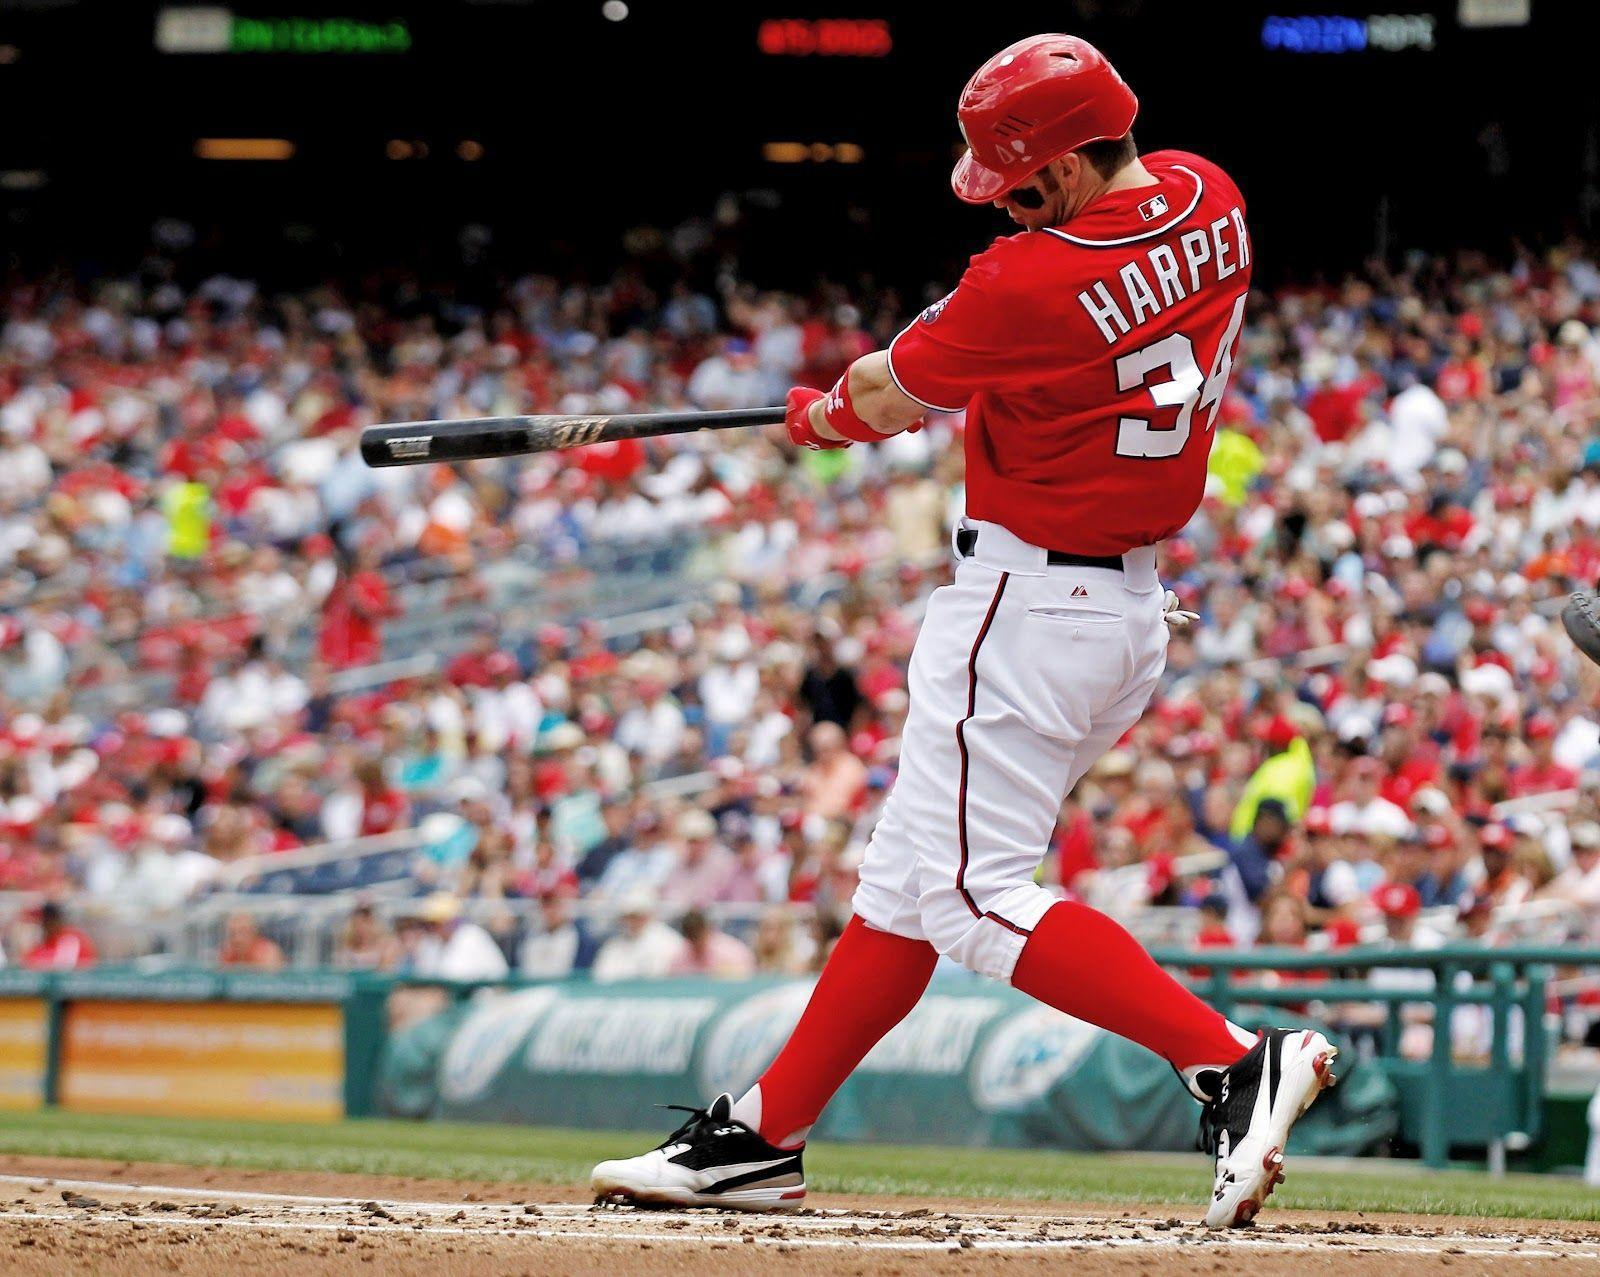 Bryce Harper Wallpapers Wallpaper Cave